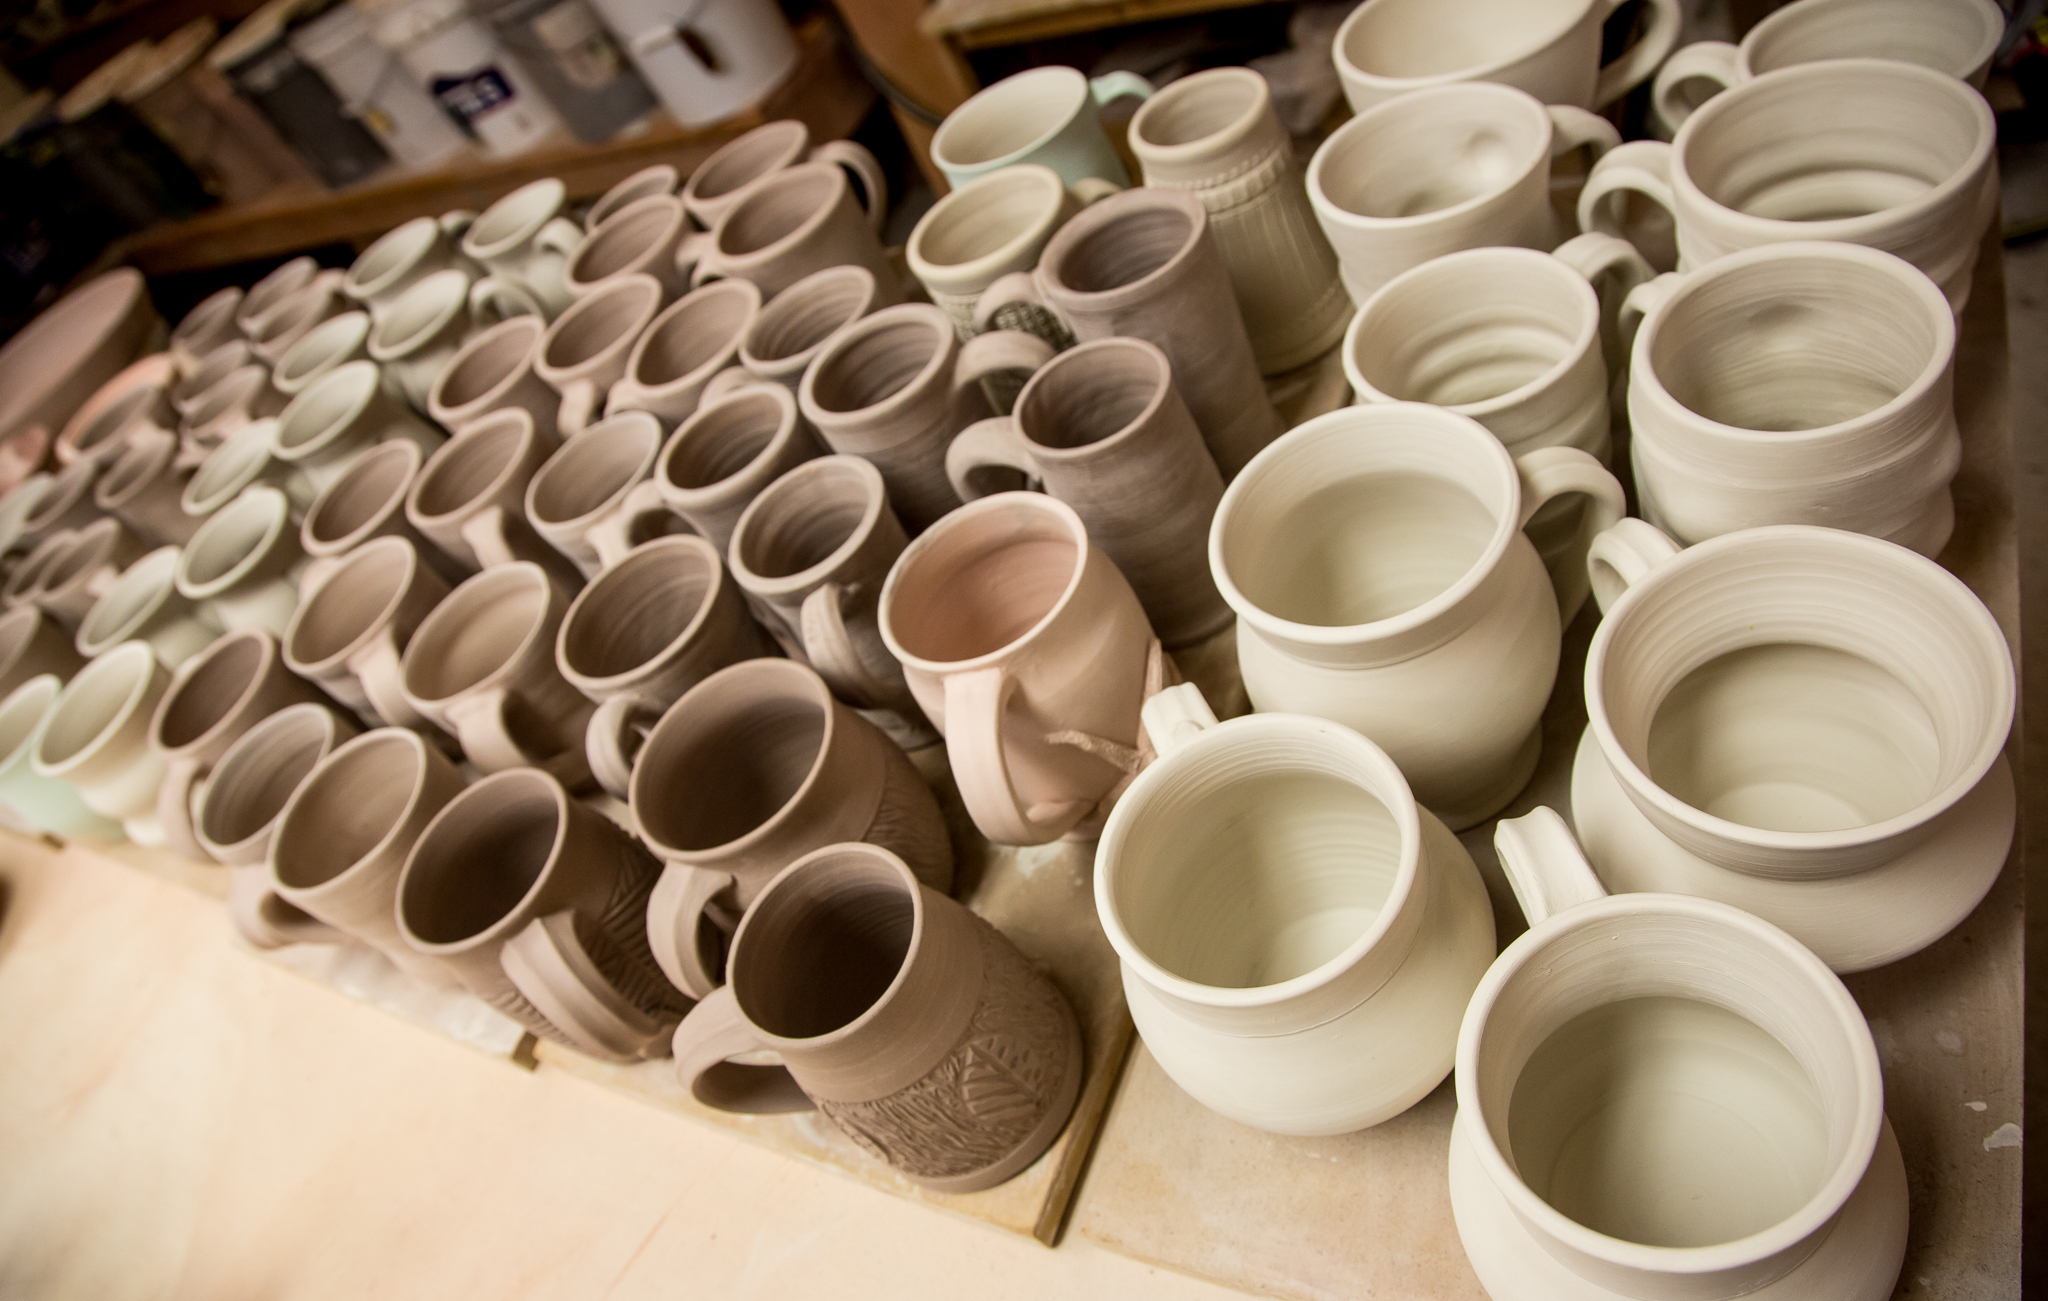 Date Night Pottery Wheel Throwing For Adults!